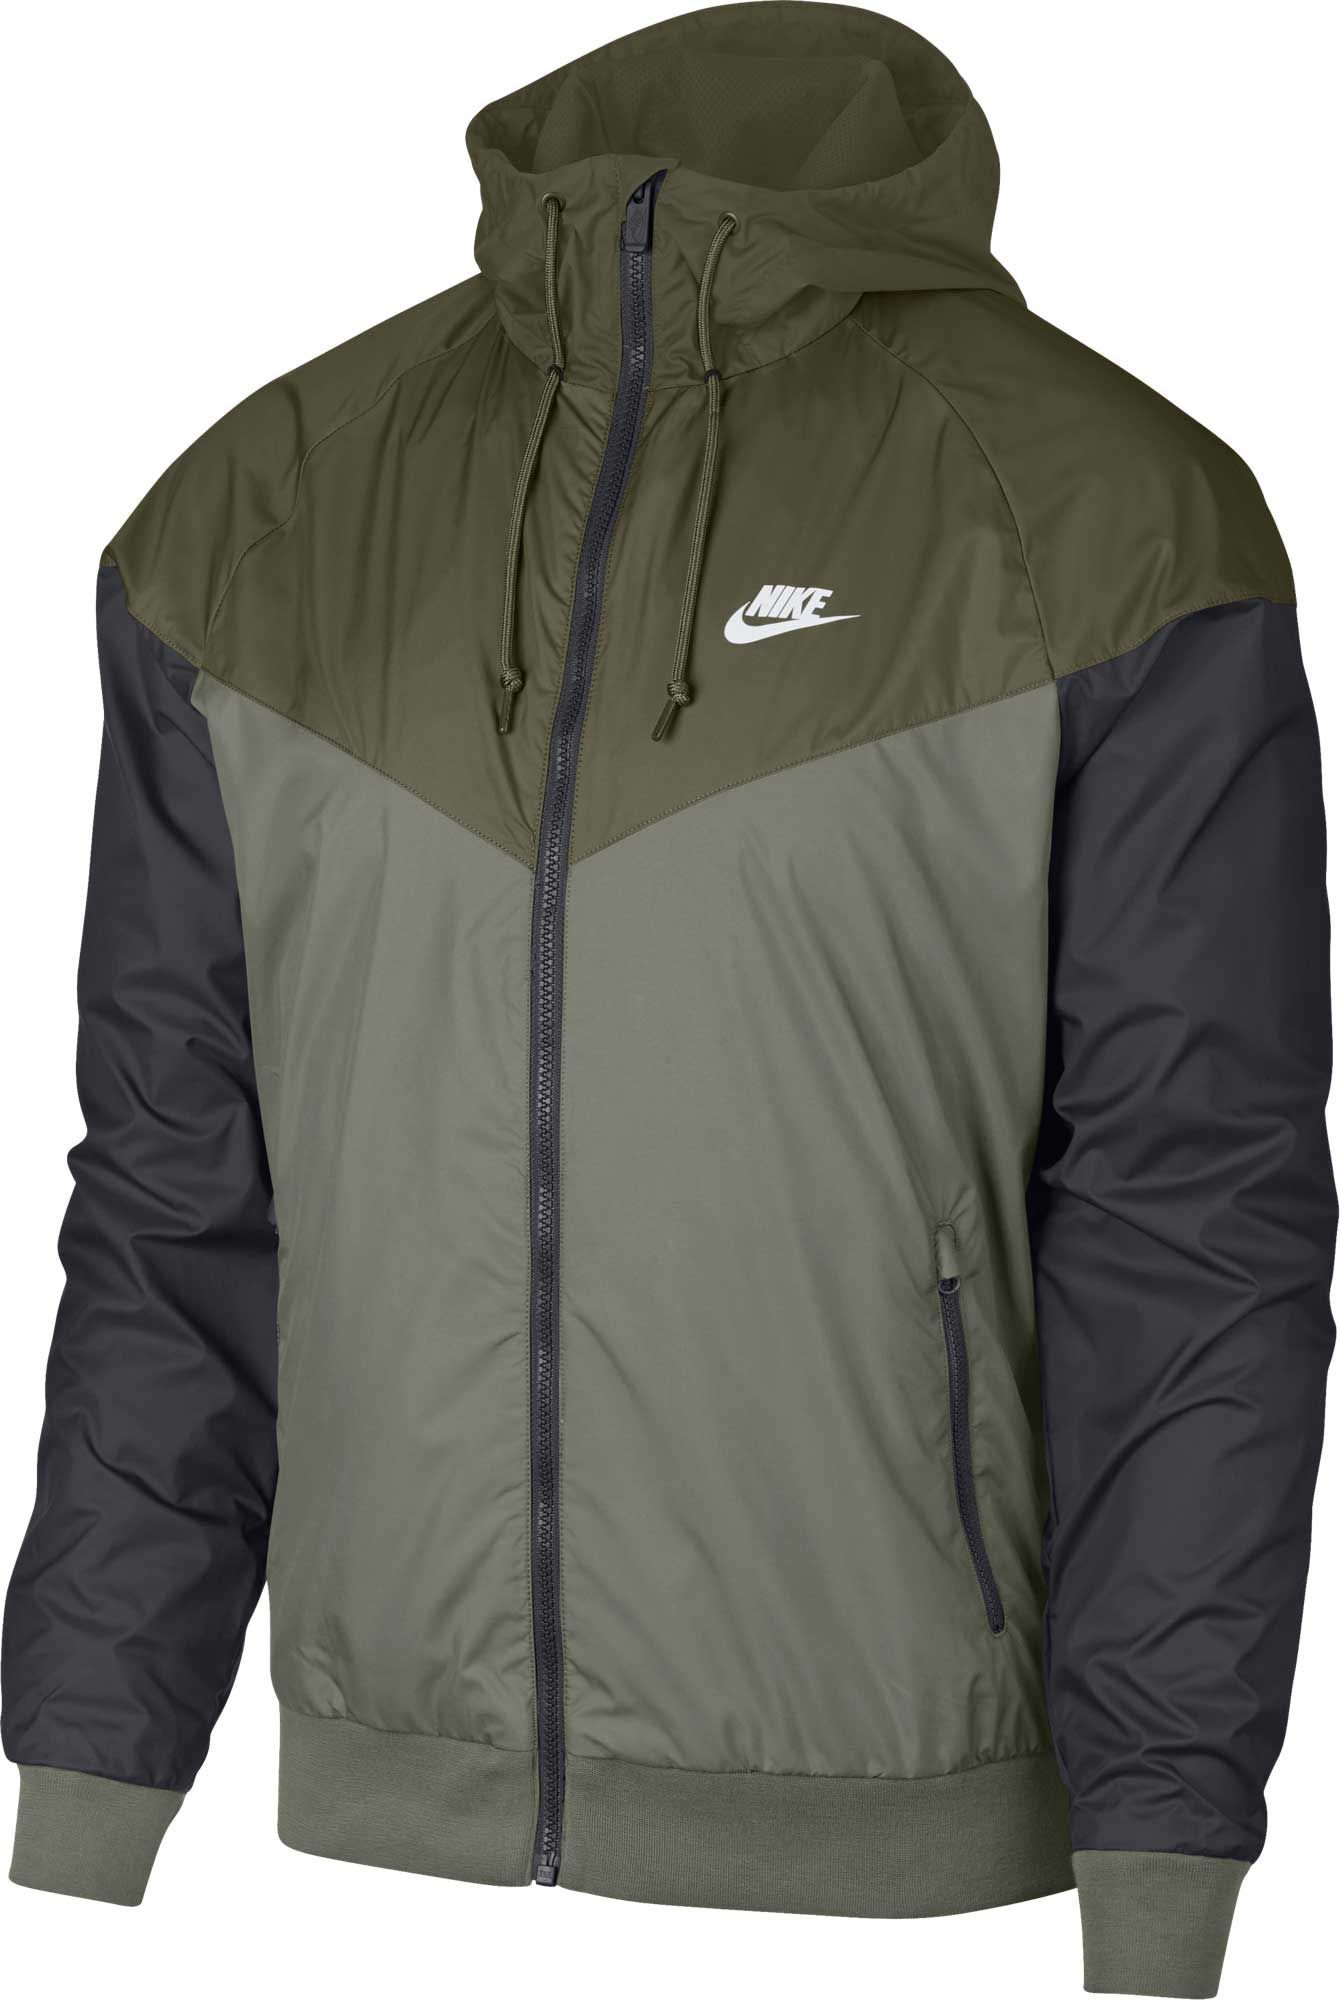 22bac9090 Nike Men's Windrunner Full Zip Jacket in 2019 | Products ...